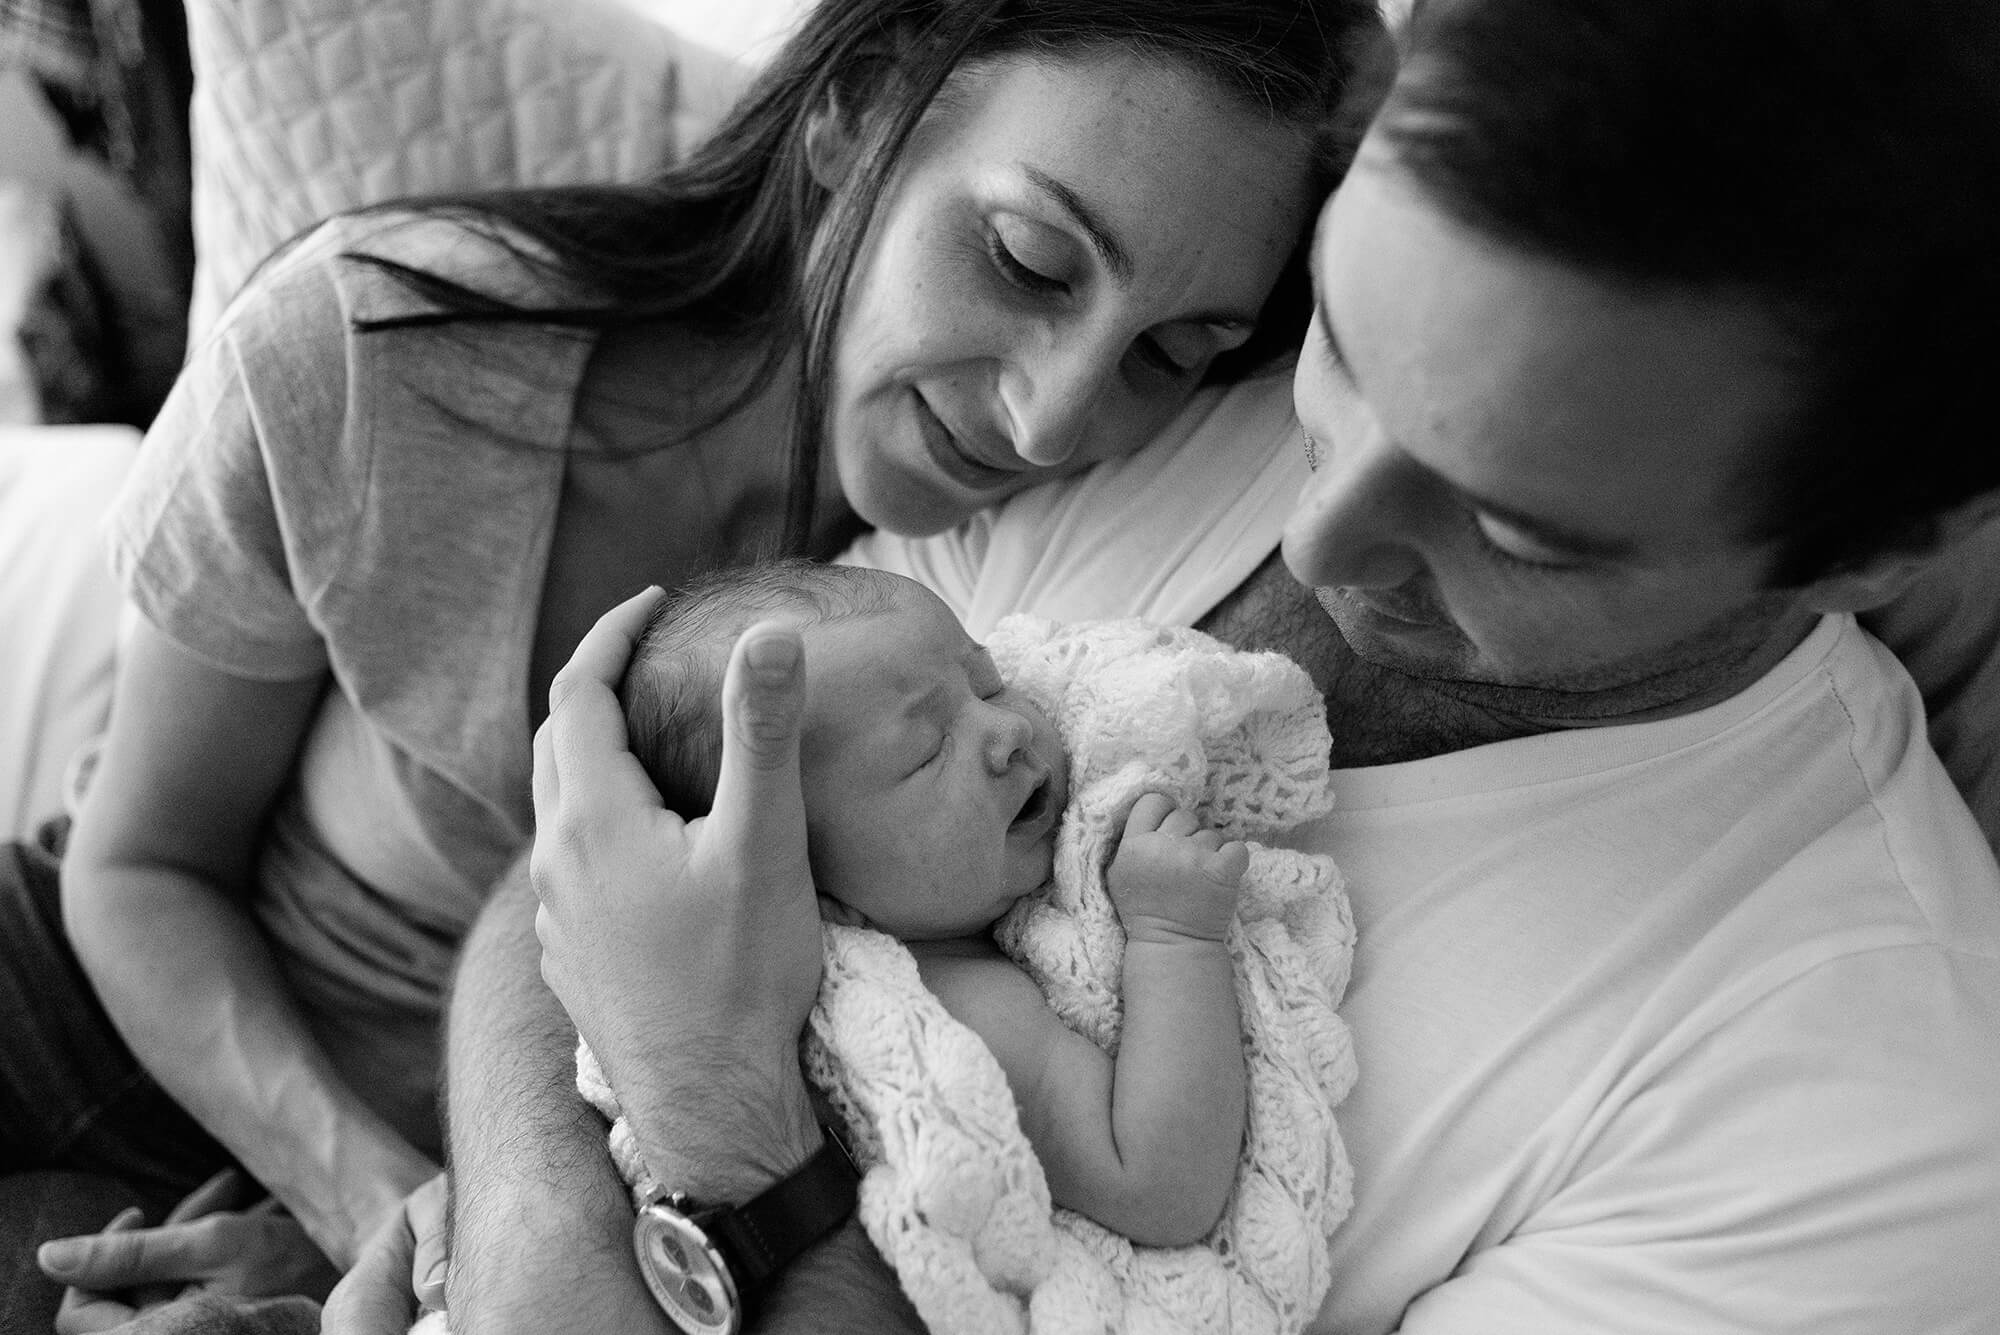 Parents snuggling newborn baby wrapped in blanket with fathers hand cradling head